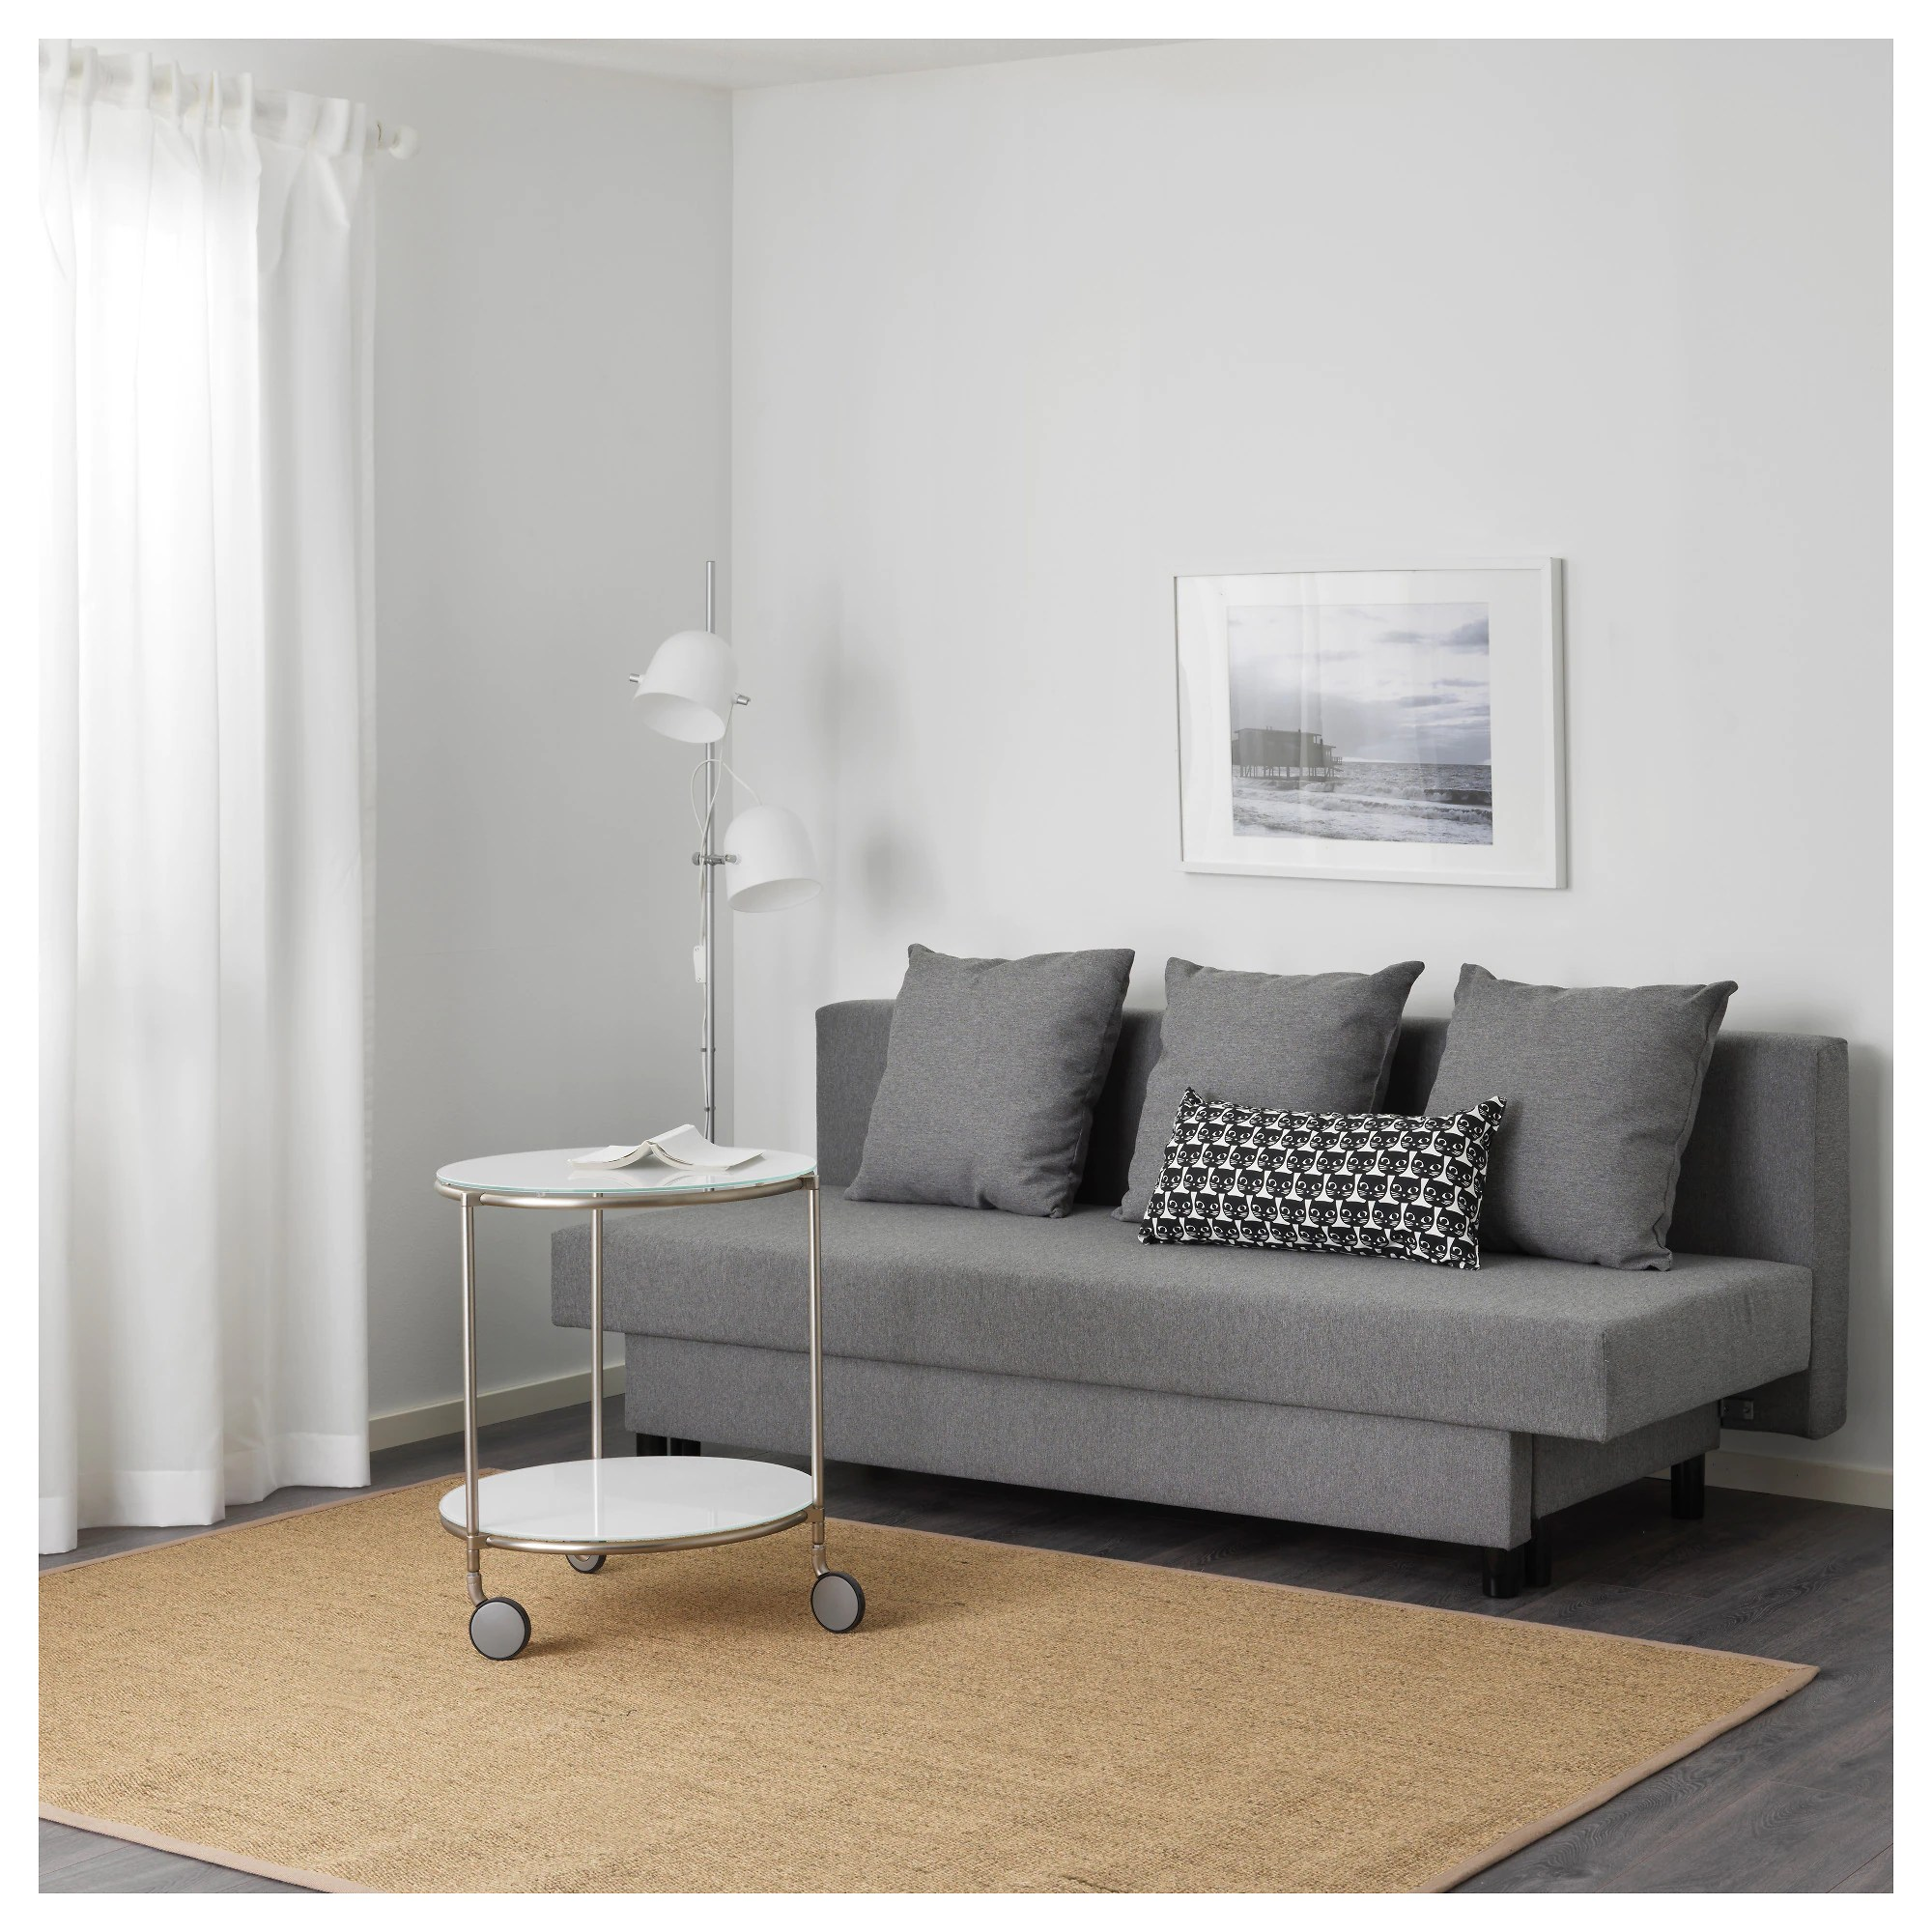 Klassische Sofas You Can Assemble Asarum Three Seat Sofa Bed Grey